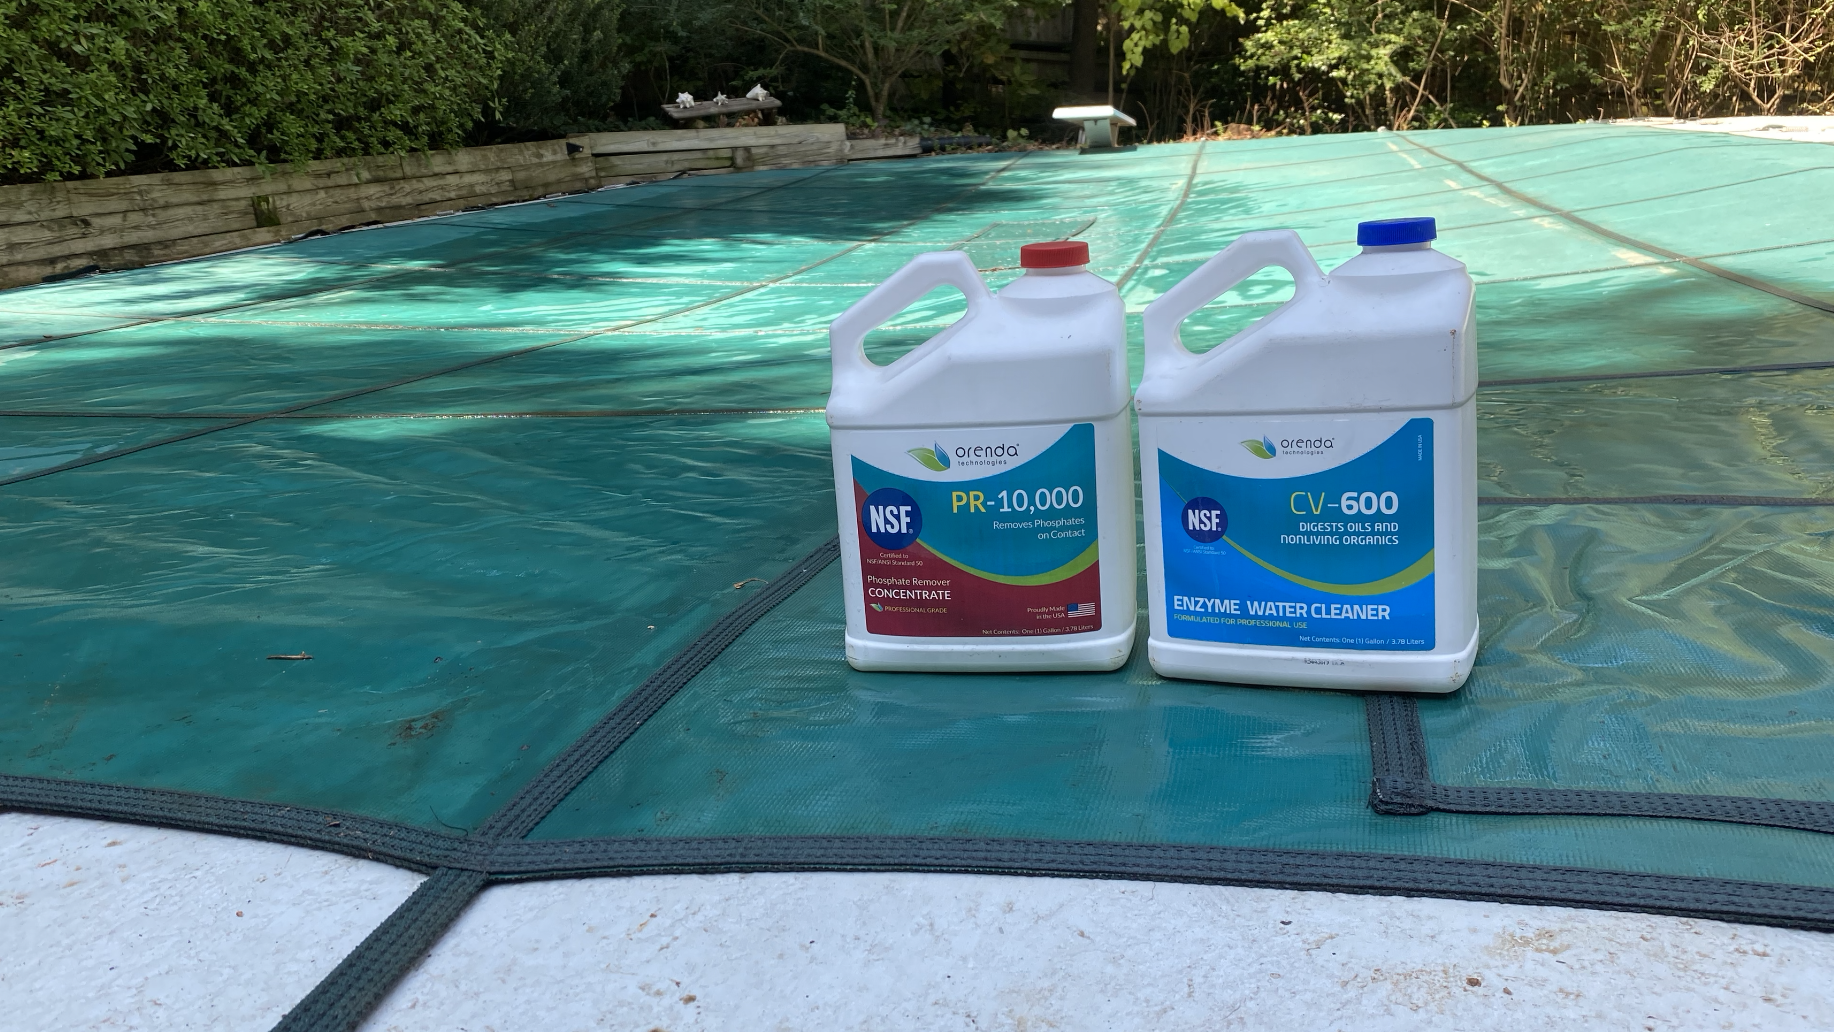 solid pool safety cover with orenda products, pool winterization cover, orenda winterizing kit